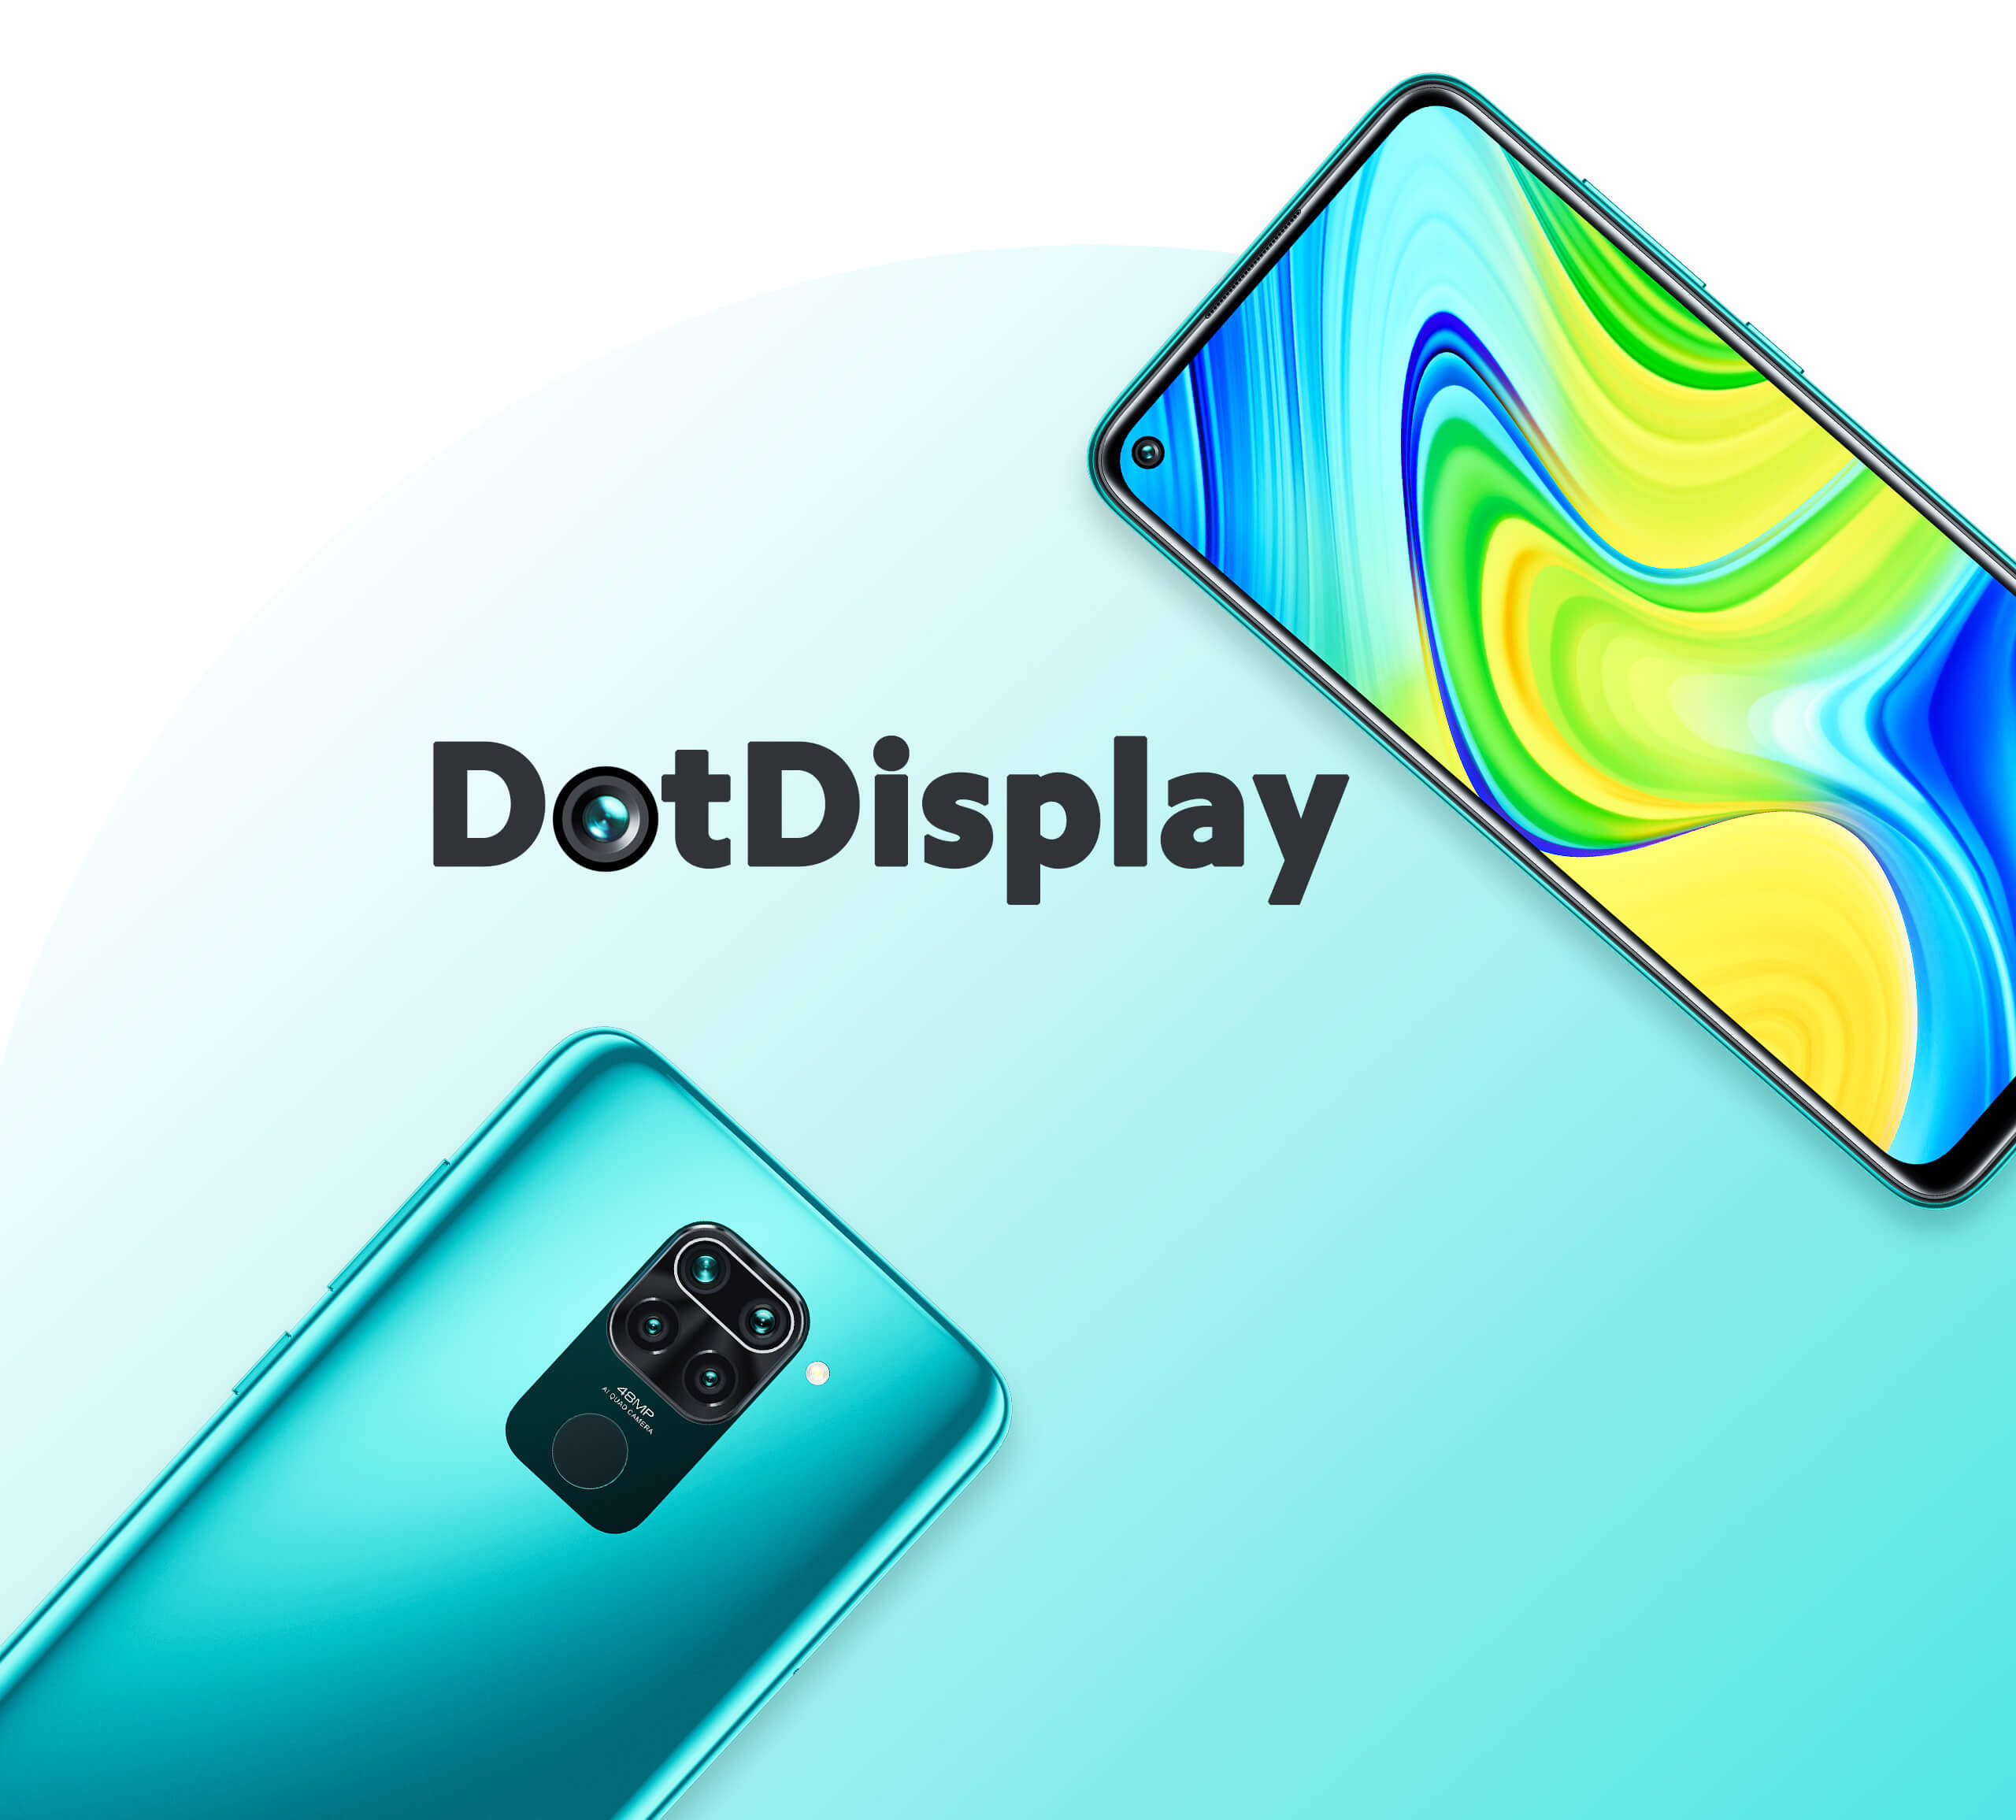 The Redmi Note 9 comes with a 6.53-inch Dot Display with a punch-hole cutout